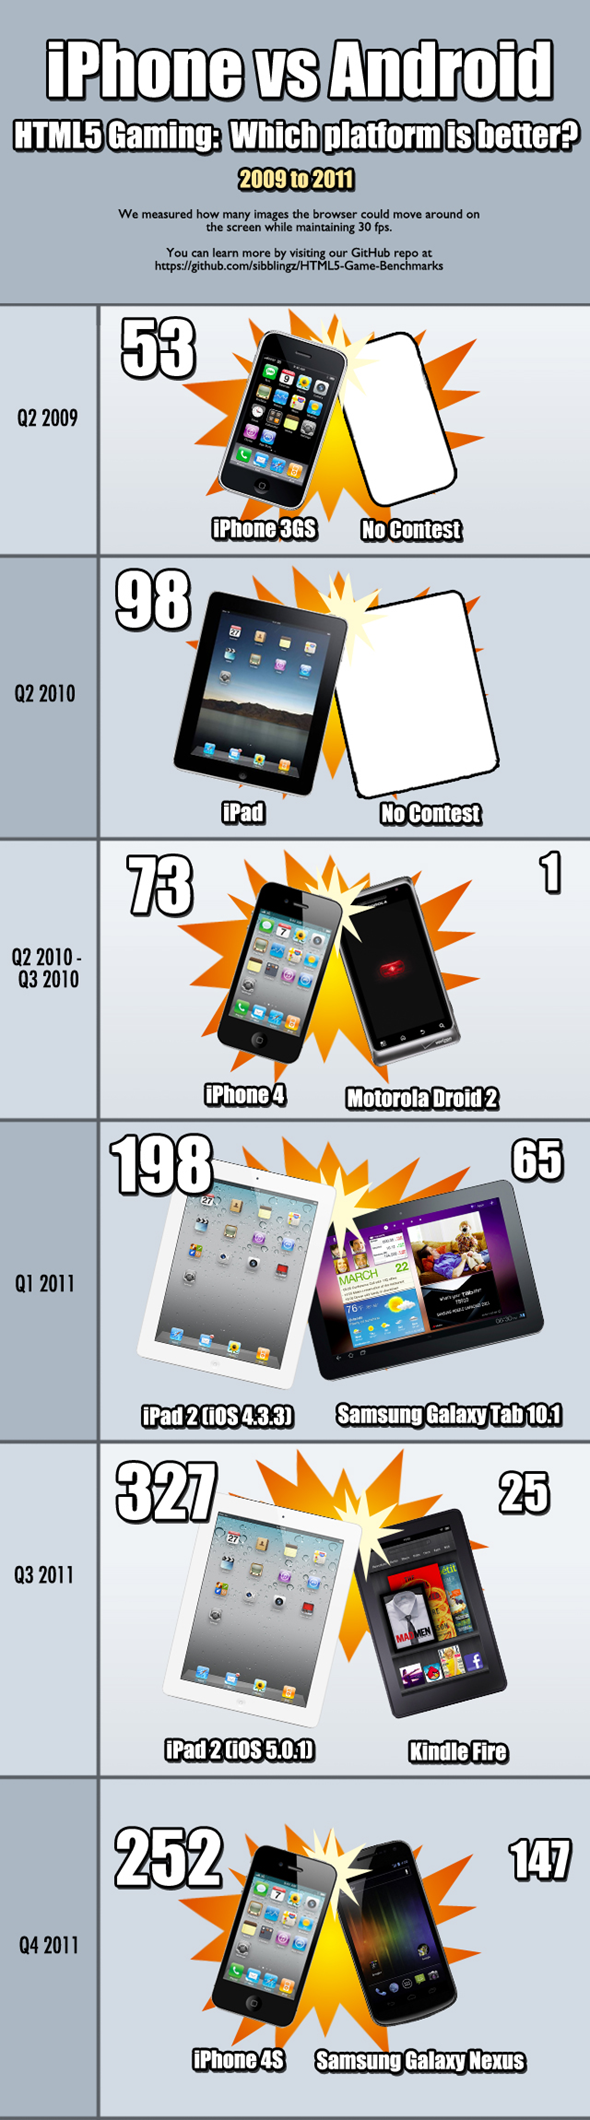 iPhone/iPad > Android in HTML5!